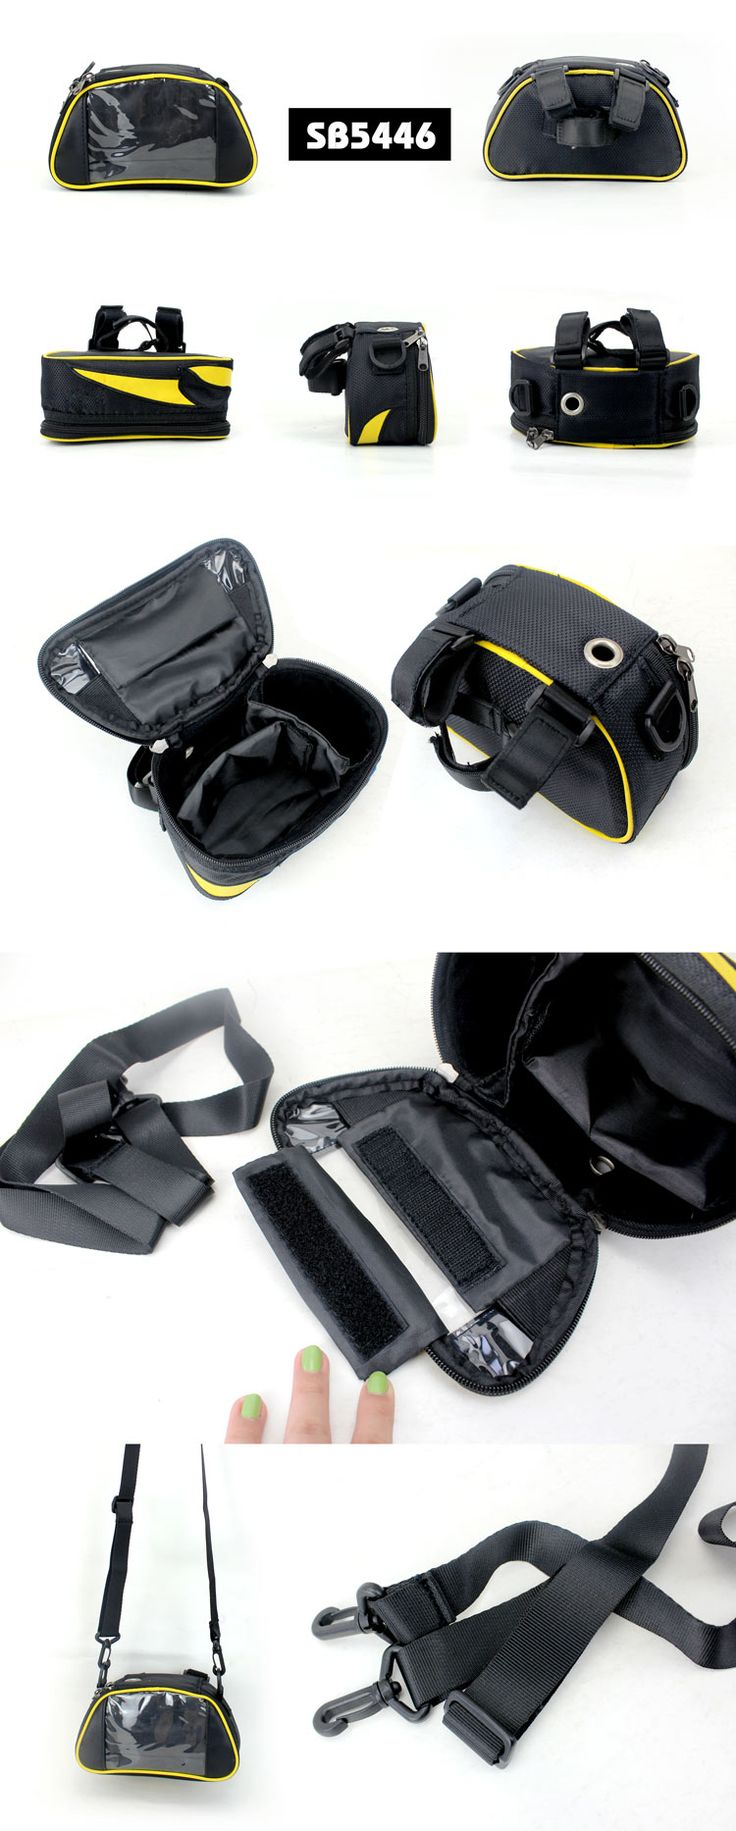 Bicycle bag with phone holder  Description:        ● Material:840D/with PU dobby fabric    ● Size:19*11*8.5CM    ● Big logo printing area    ● OEM design is welcome www.ideagroupigm.com